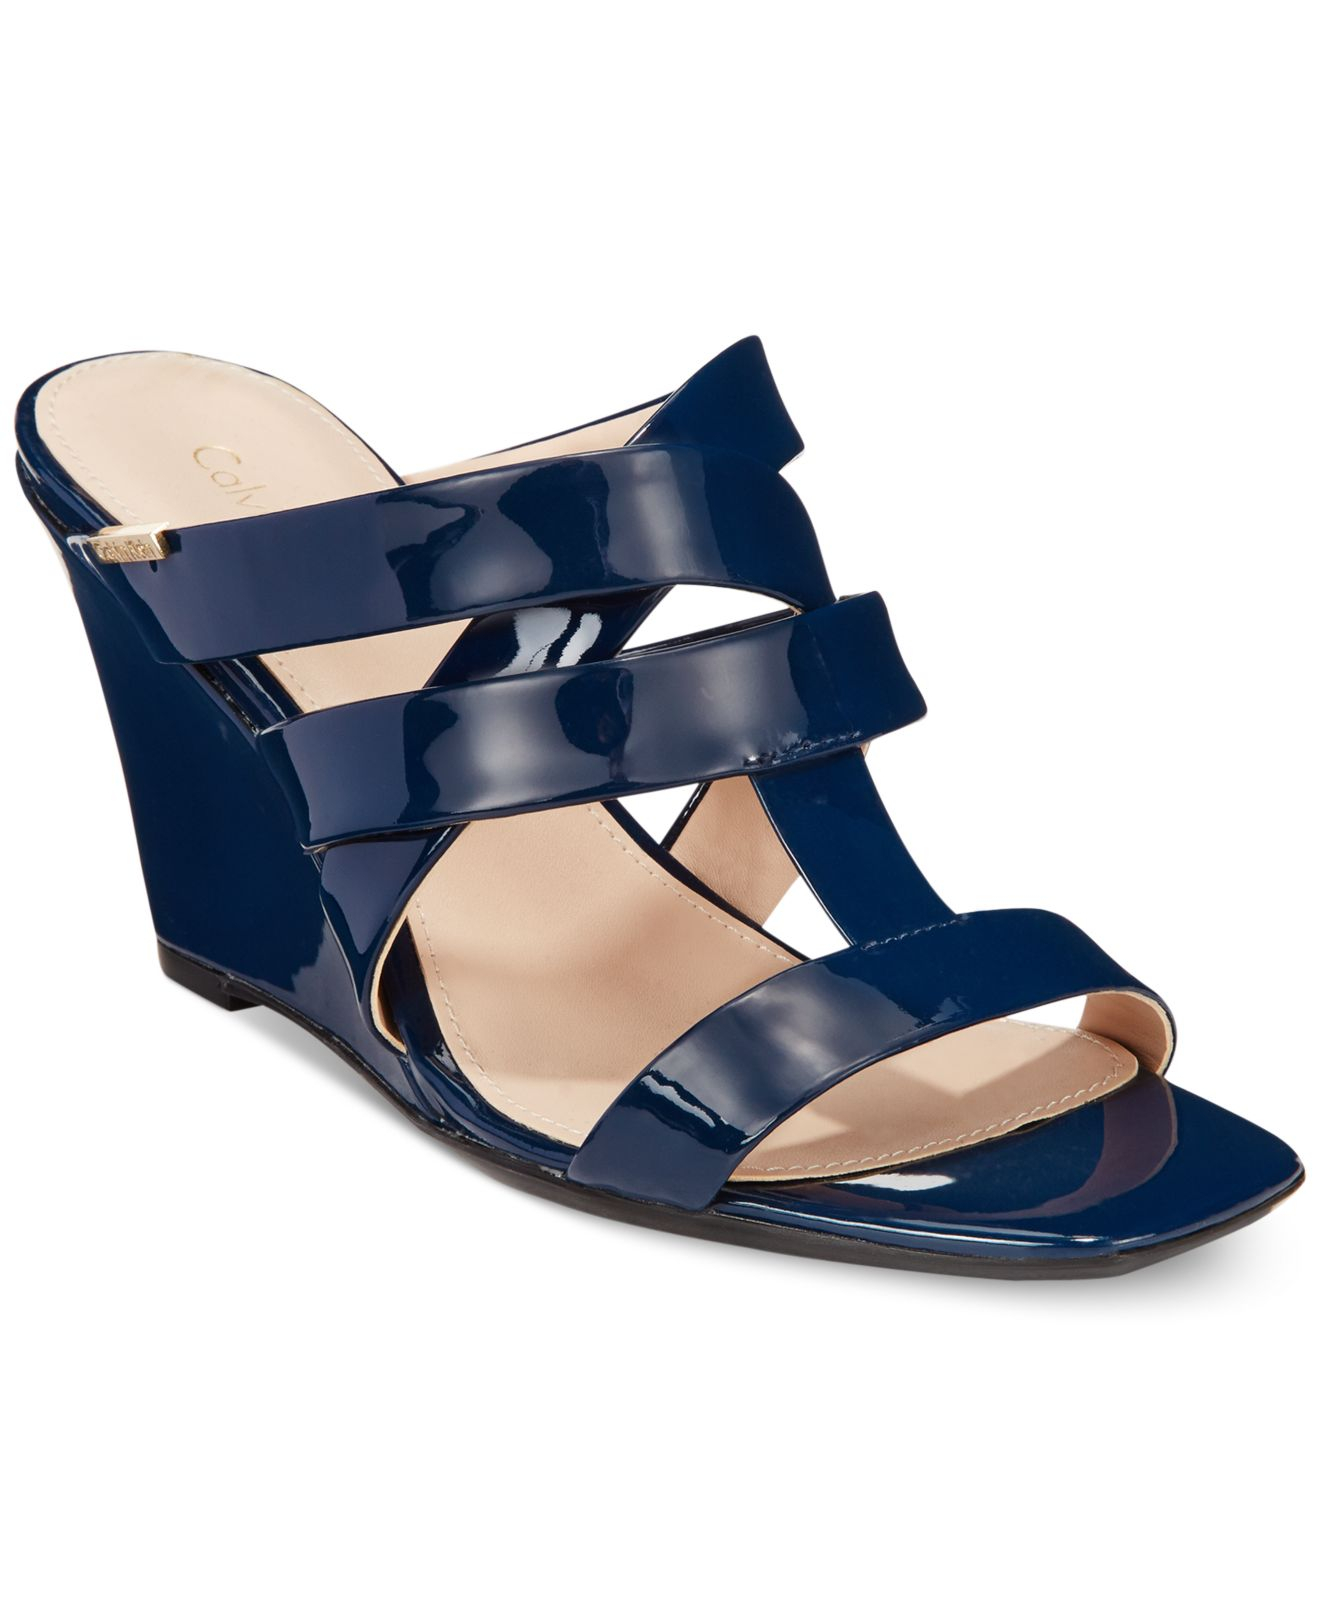 dd29a812e3cfd3 ... Lyst Calvin Klein Women S Nona Wedge Sandals In Blue great fit 89919  36a64 ...